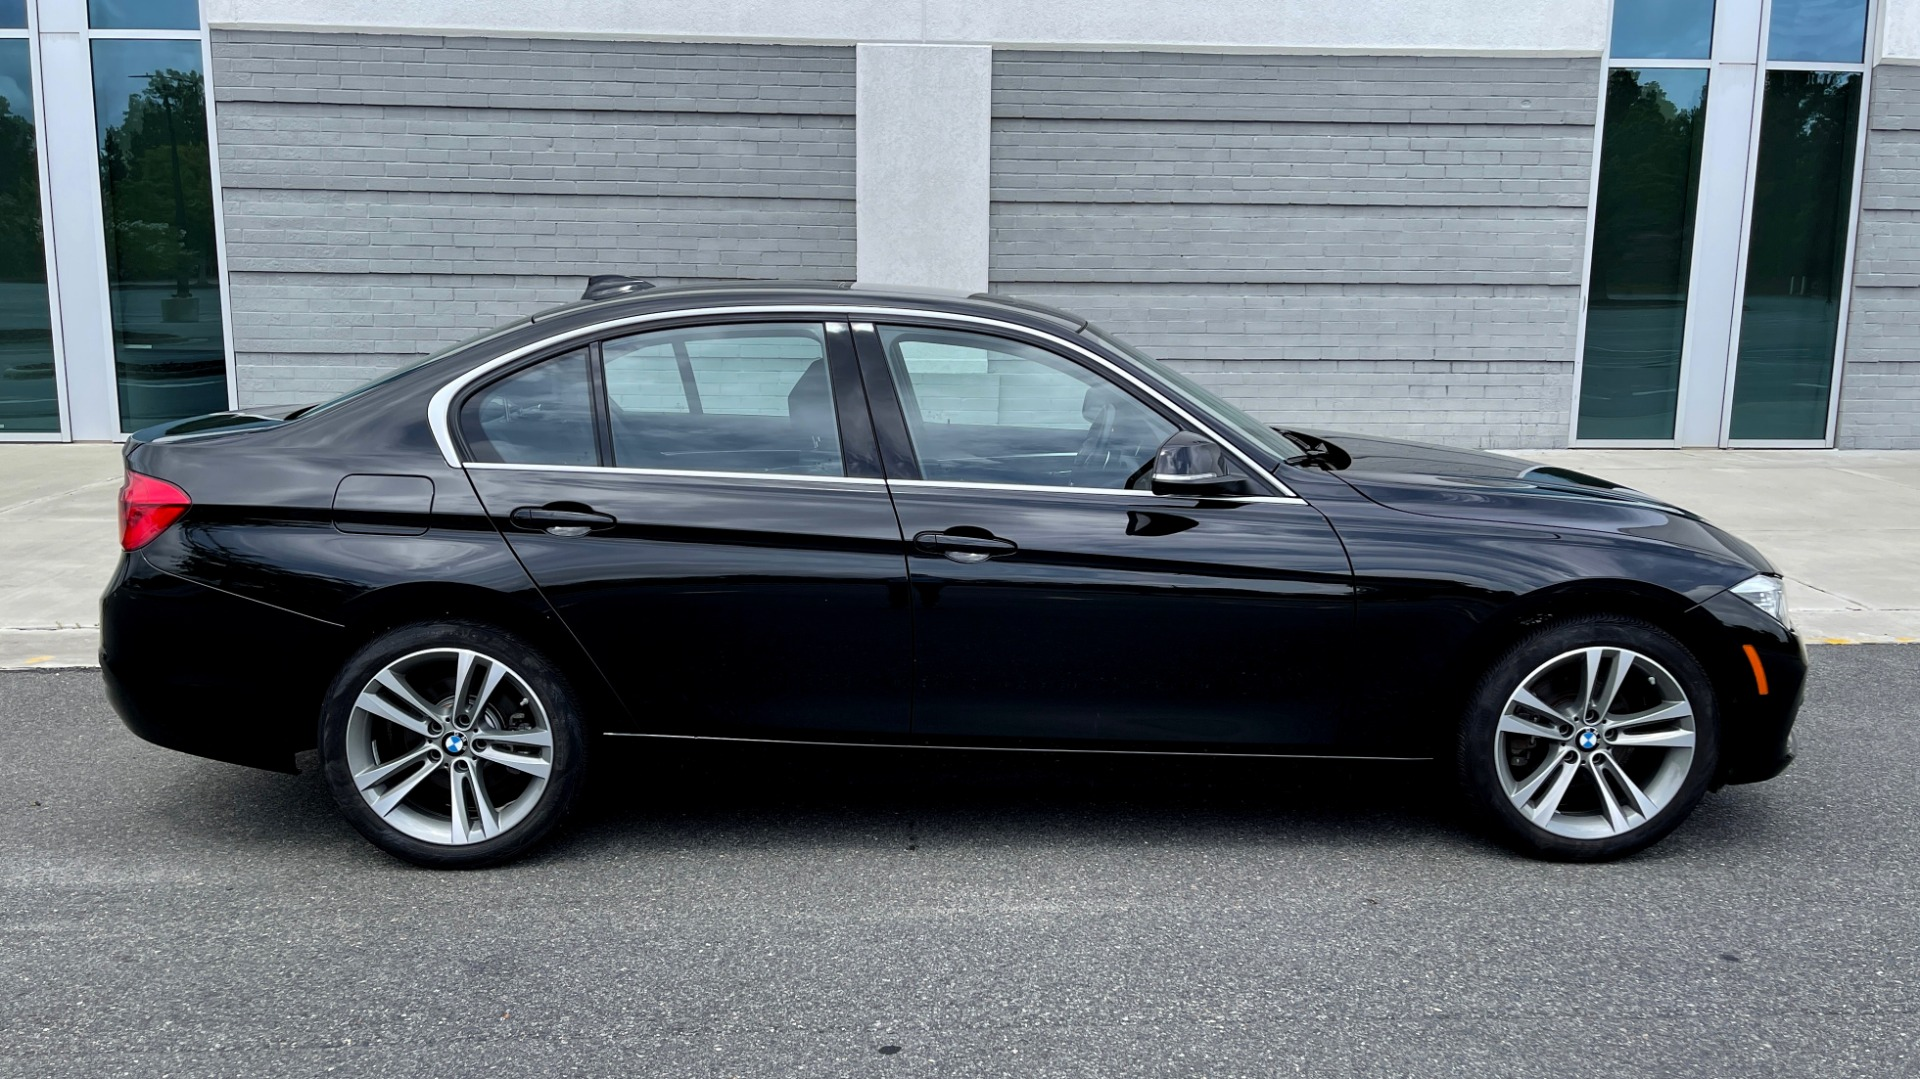 Used 2018 BMW 3 SERIES 330IXDRIVE / NAV / CONV PKG / ABSD / SUNROOF / REARVIEW for sale $29,599 at Formula Imports in Charlotte NC 28227 6